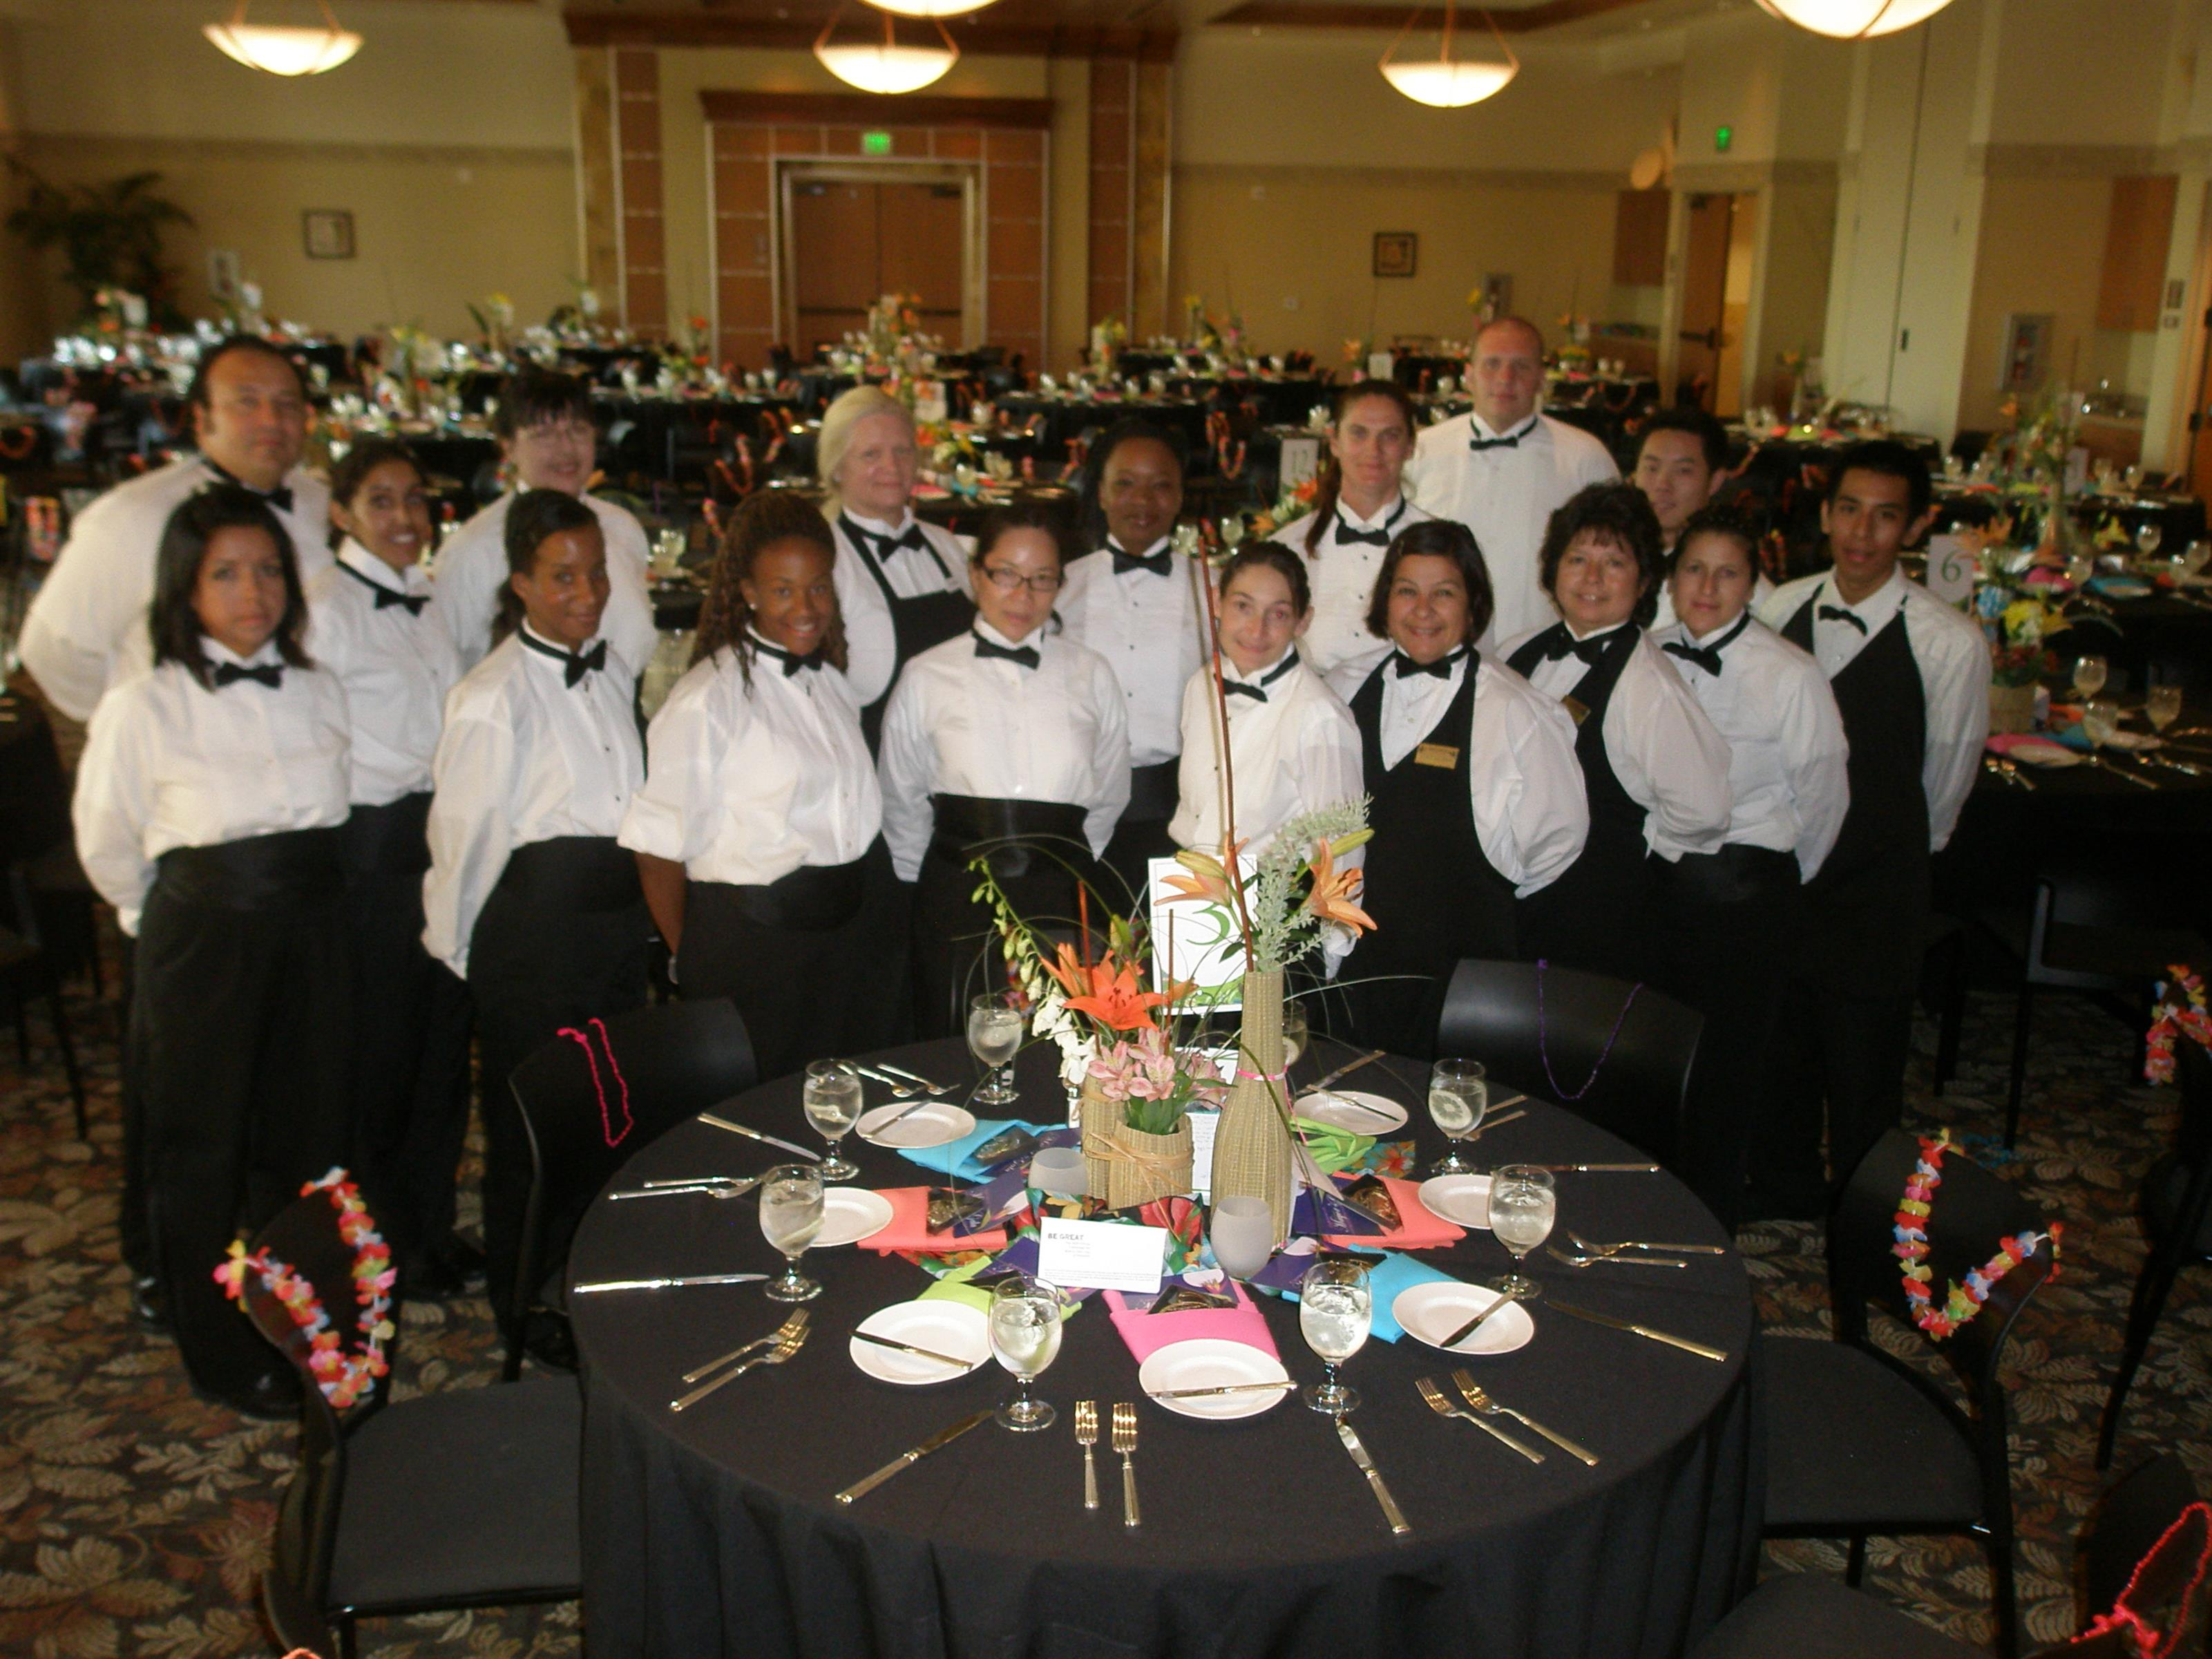 Catering staff dressed in black and white, posing behind banquet table